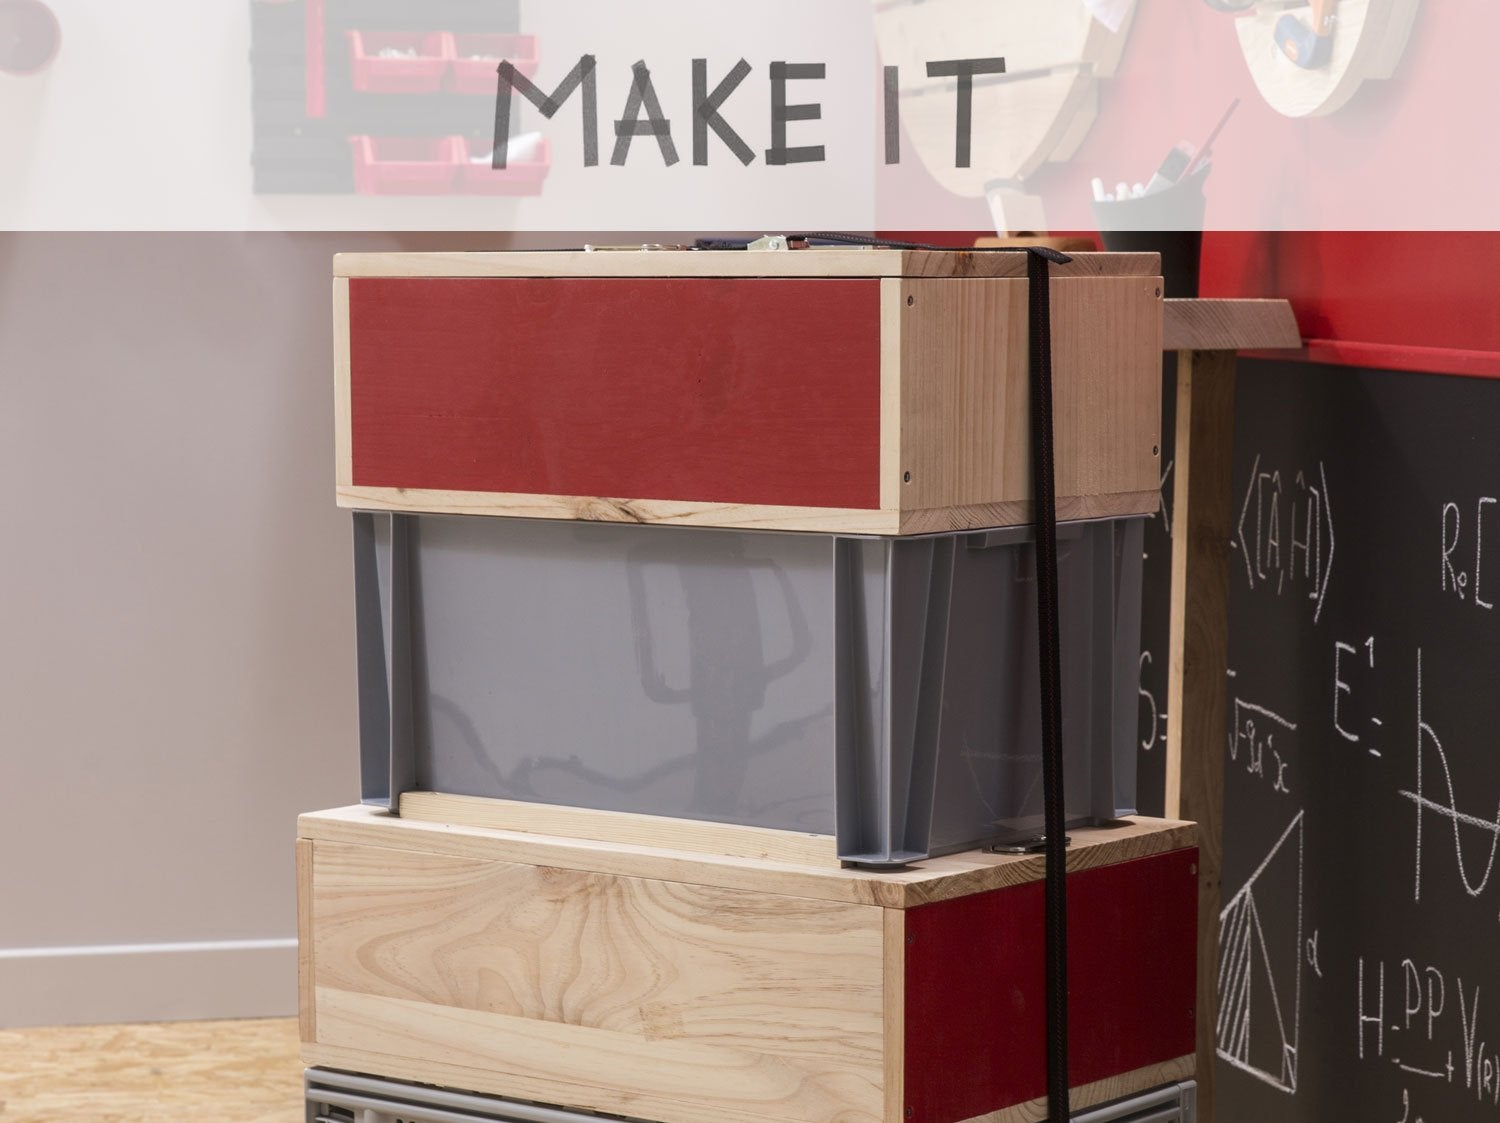 excellent diy fabriquer une multi caisse outils with boite a outils vide leroy merlin with boite. Black Bedroom Furniture Sets. Home Design Ideas